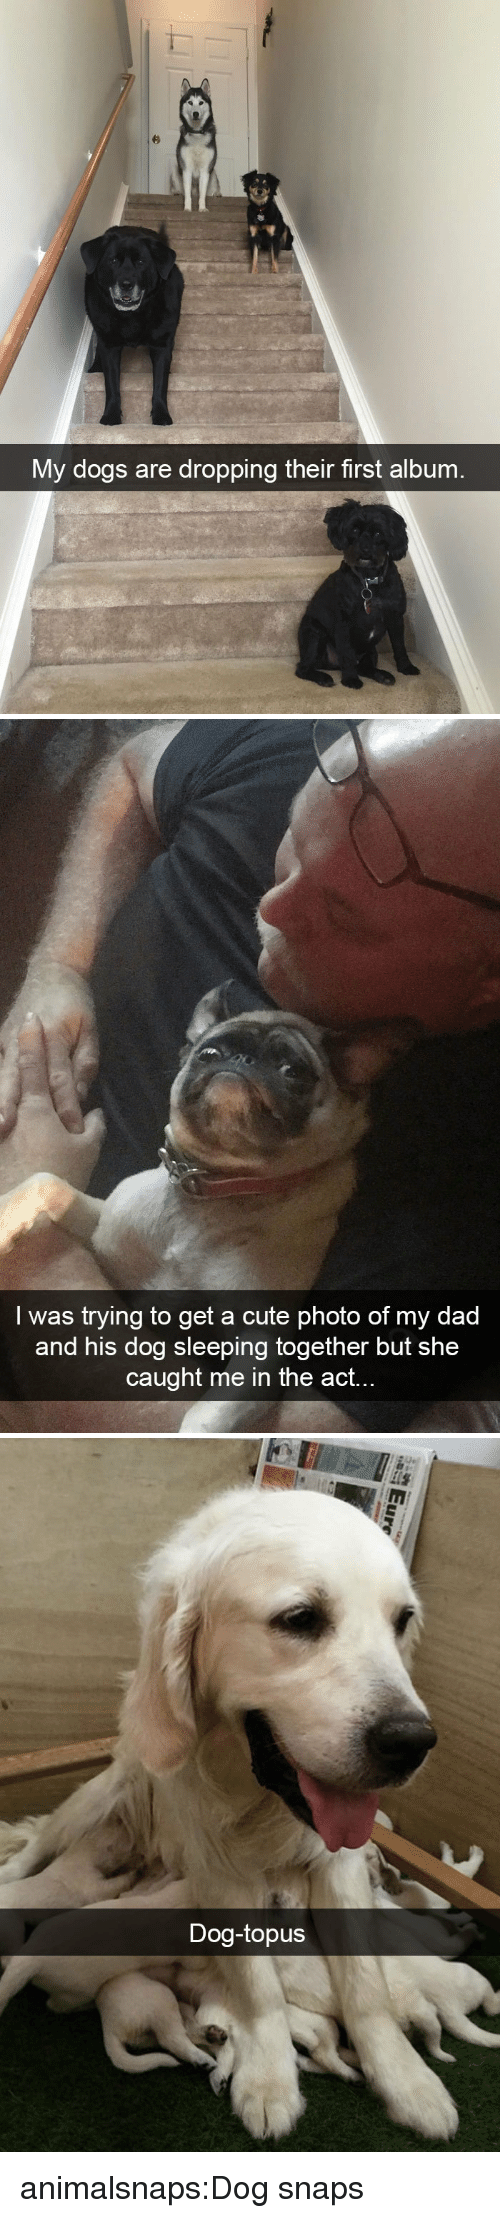 Cute, Dad, and Dogs: My dogs are dropping their first album   I was trying to get a cute photo of my dad  and his dog sleeping together but she  caught me in the act.   Dog-topus animalsnaps:Dog snaps